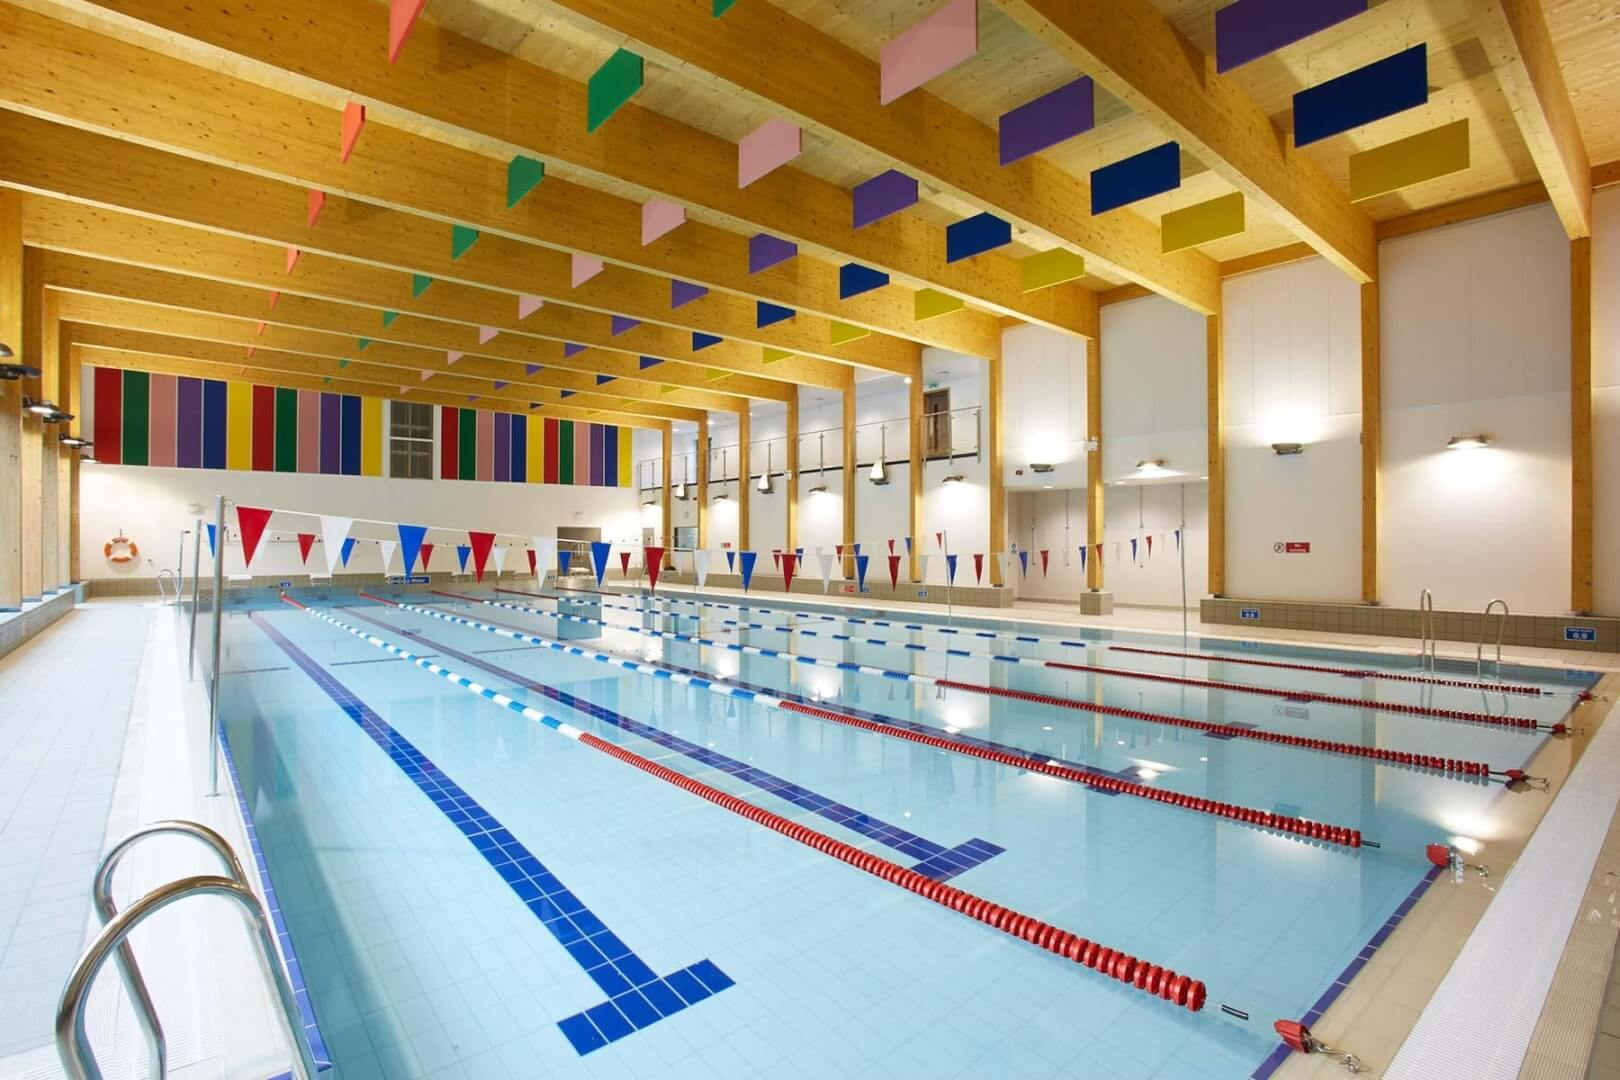 Striking Swimming Pools for Schools